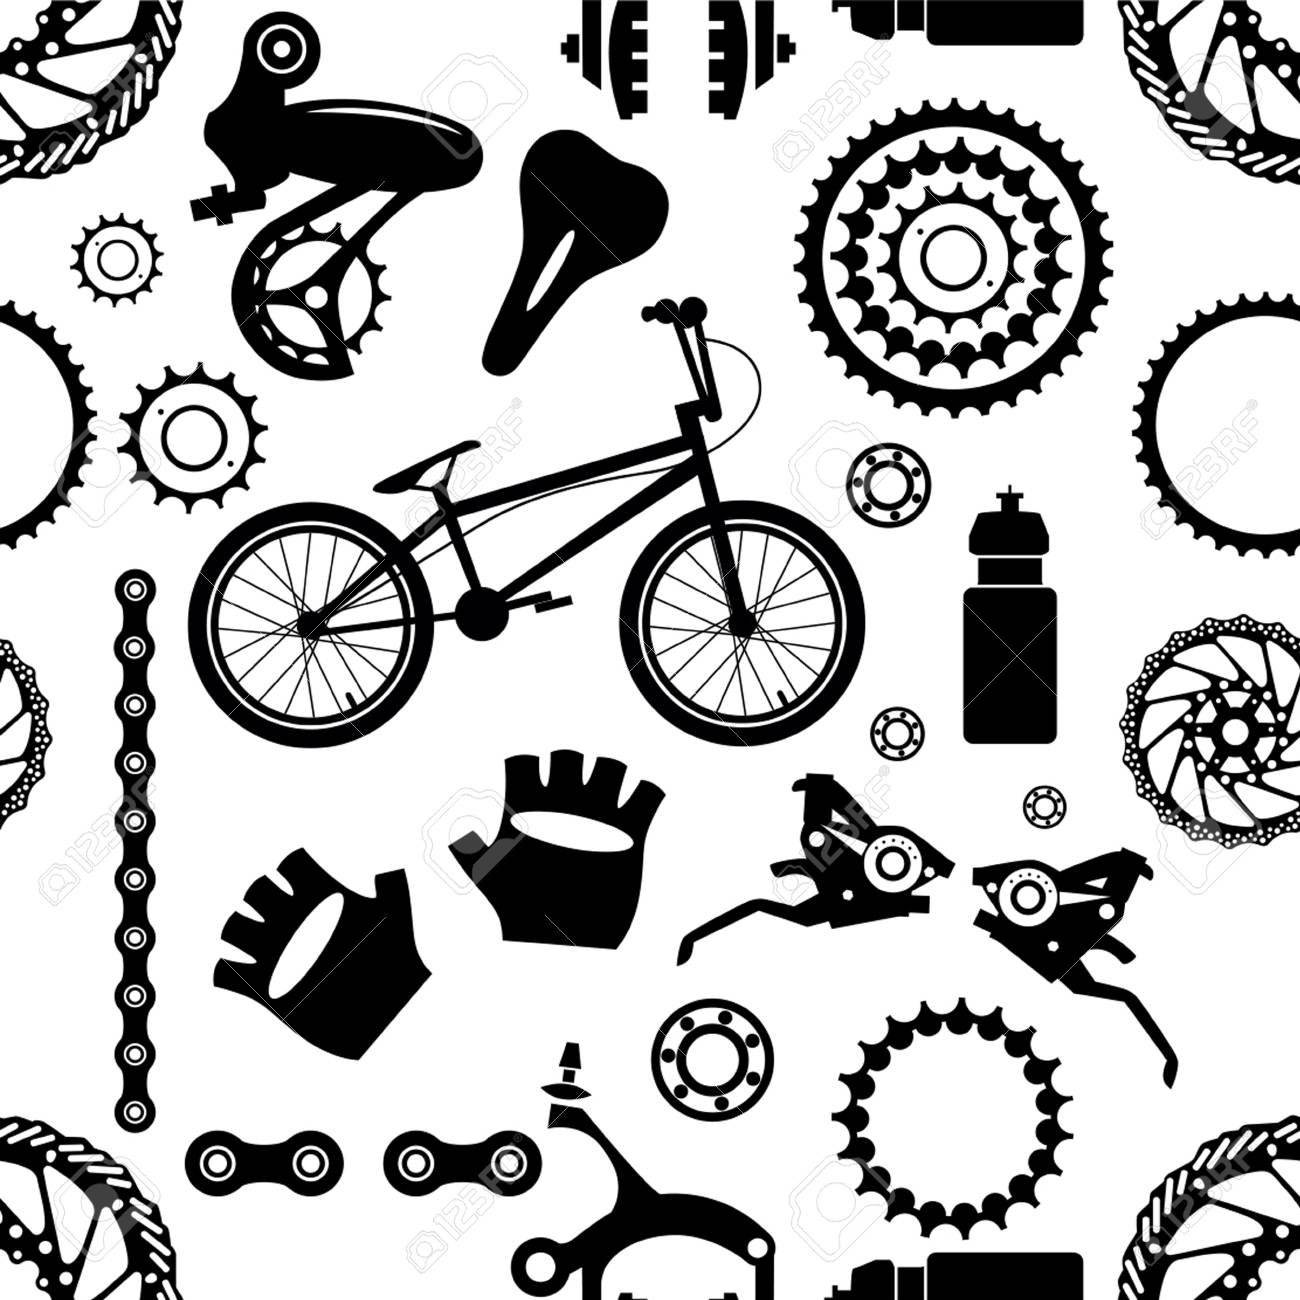 Bike Bicycle Parts Seamless Pattern Royalty Free Cliparts